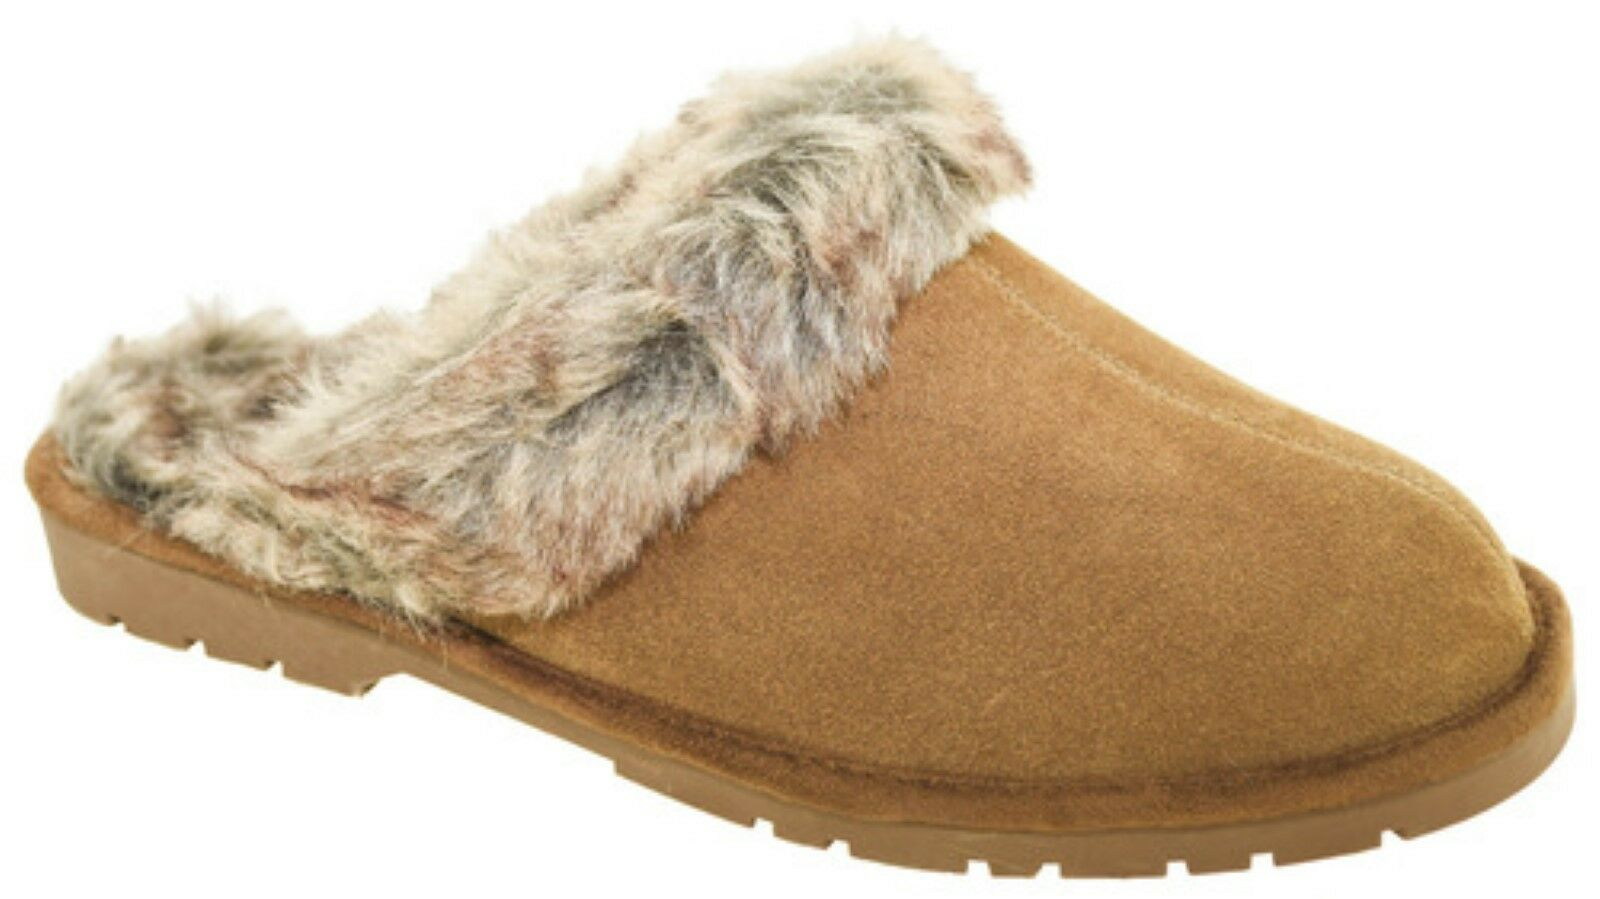 NEW SPORTO JASMINE 2 SUEDE LEATHER SHEARLING SLIPPERS SCUFFS SLIDES BROWN M 7 8